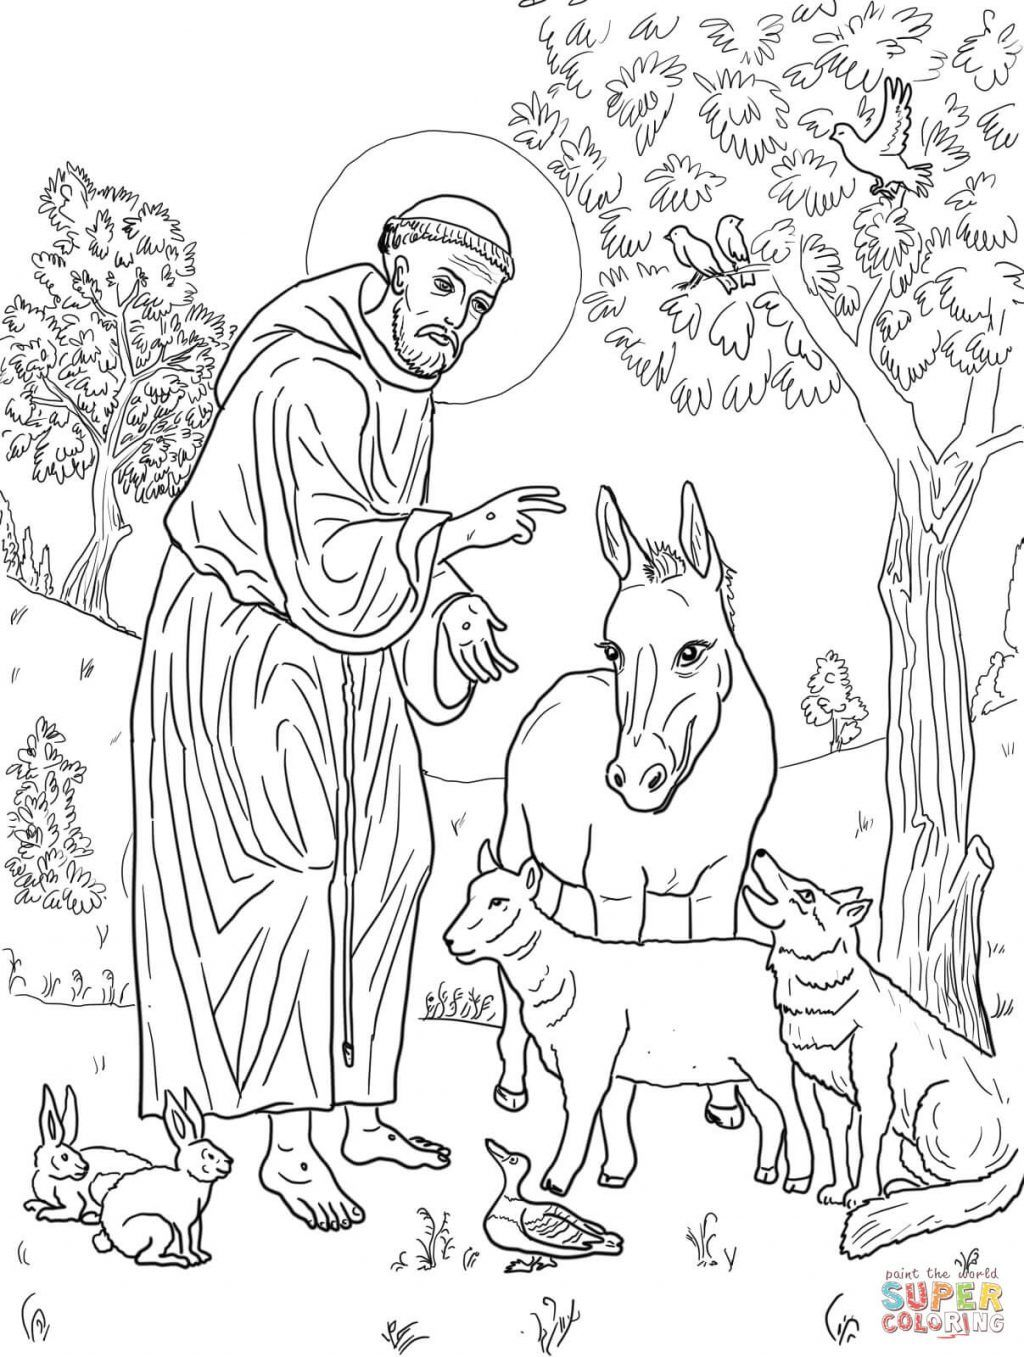 Printable: Exclusive Inspiration St Francis Of Assisi ...